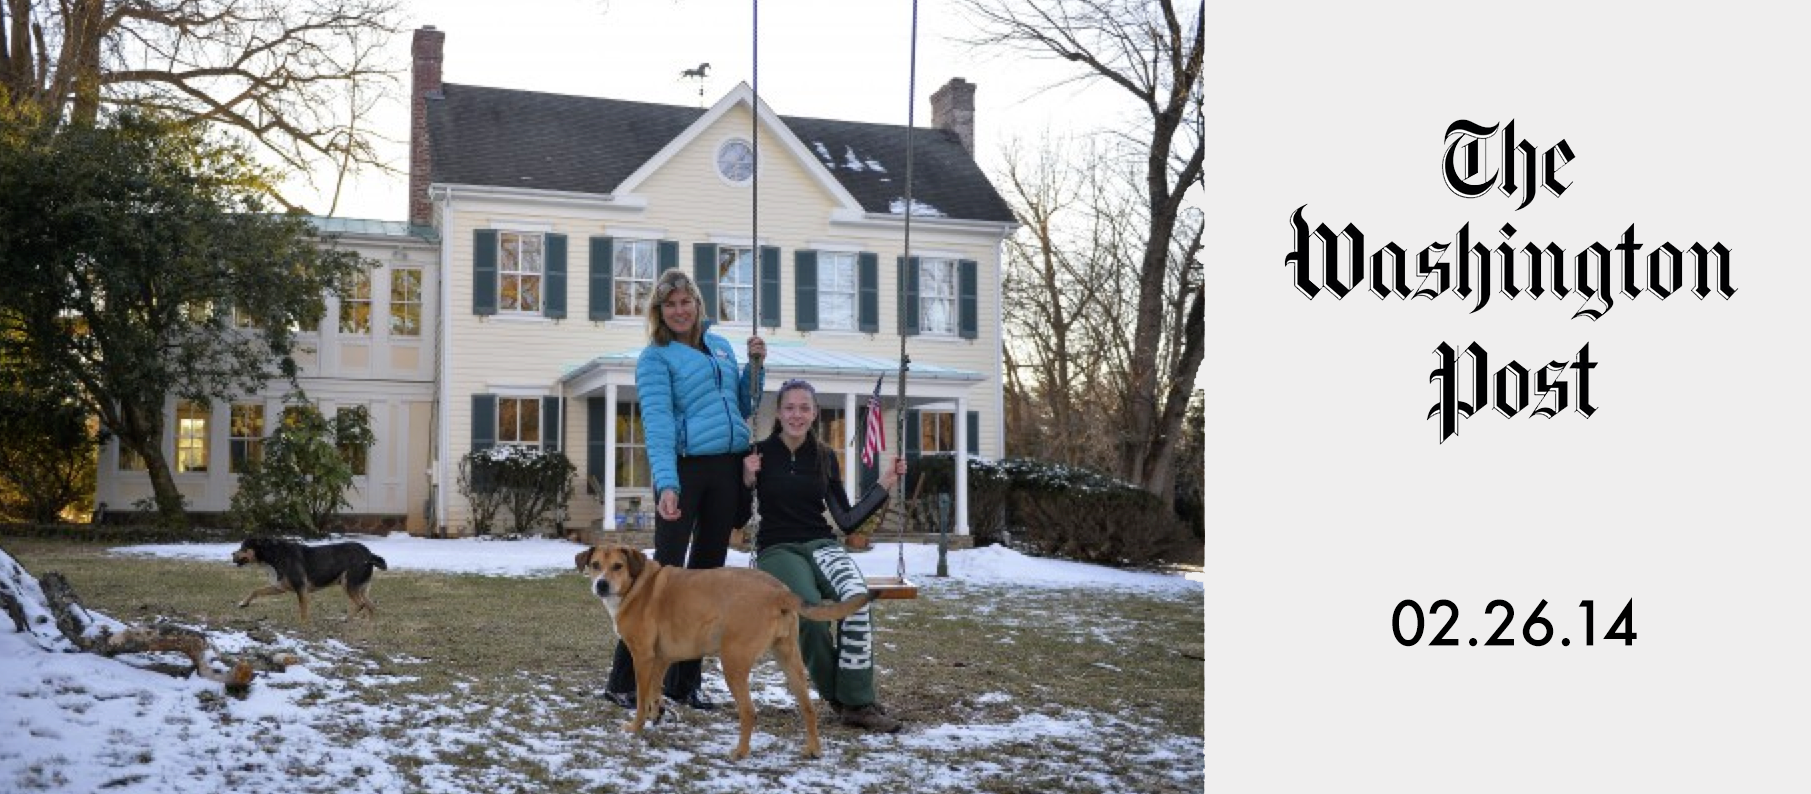 Diana Conway and her daughter Alexandra, 15, in front of their Potomac, Md., home, which was used as one of the film locations in  Philomena.  (Image via   Washington Post  .)